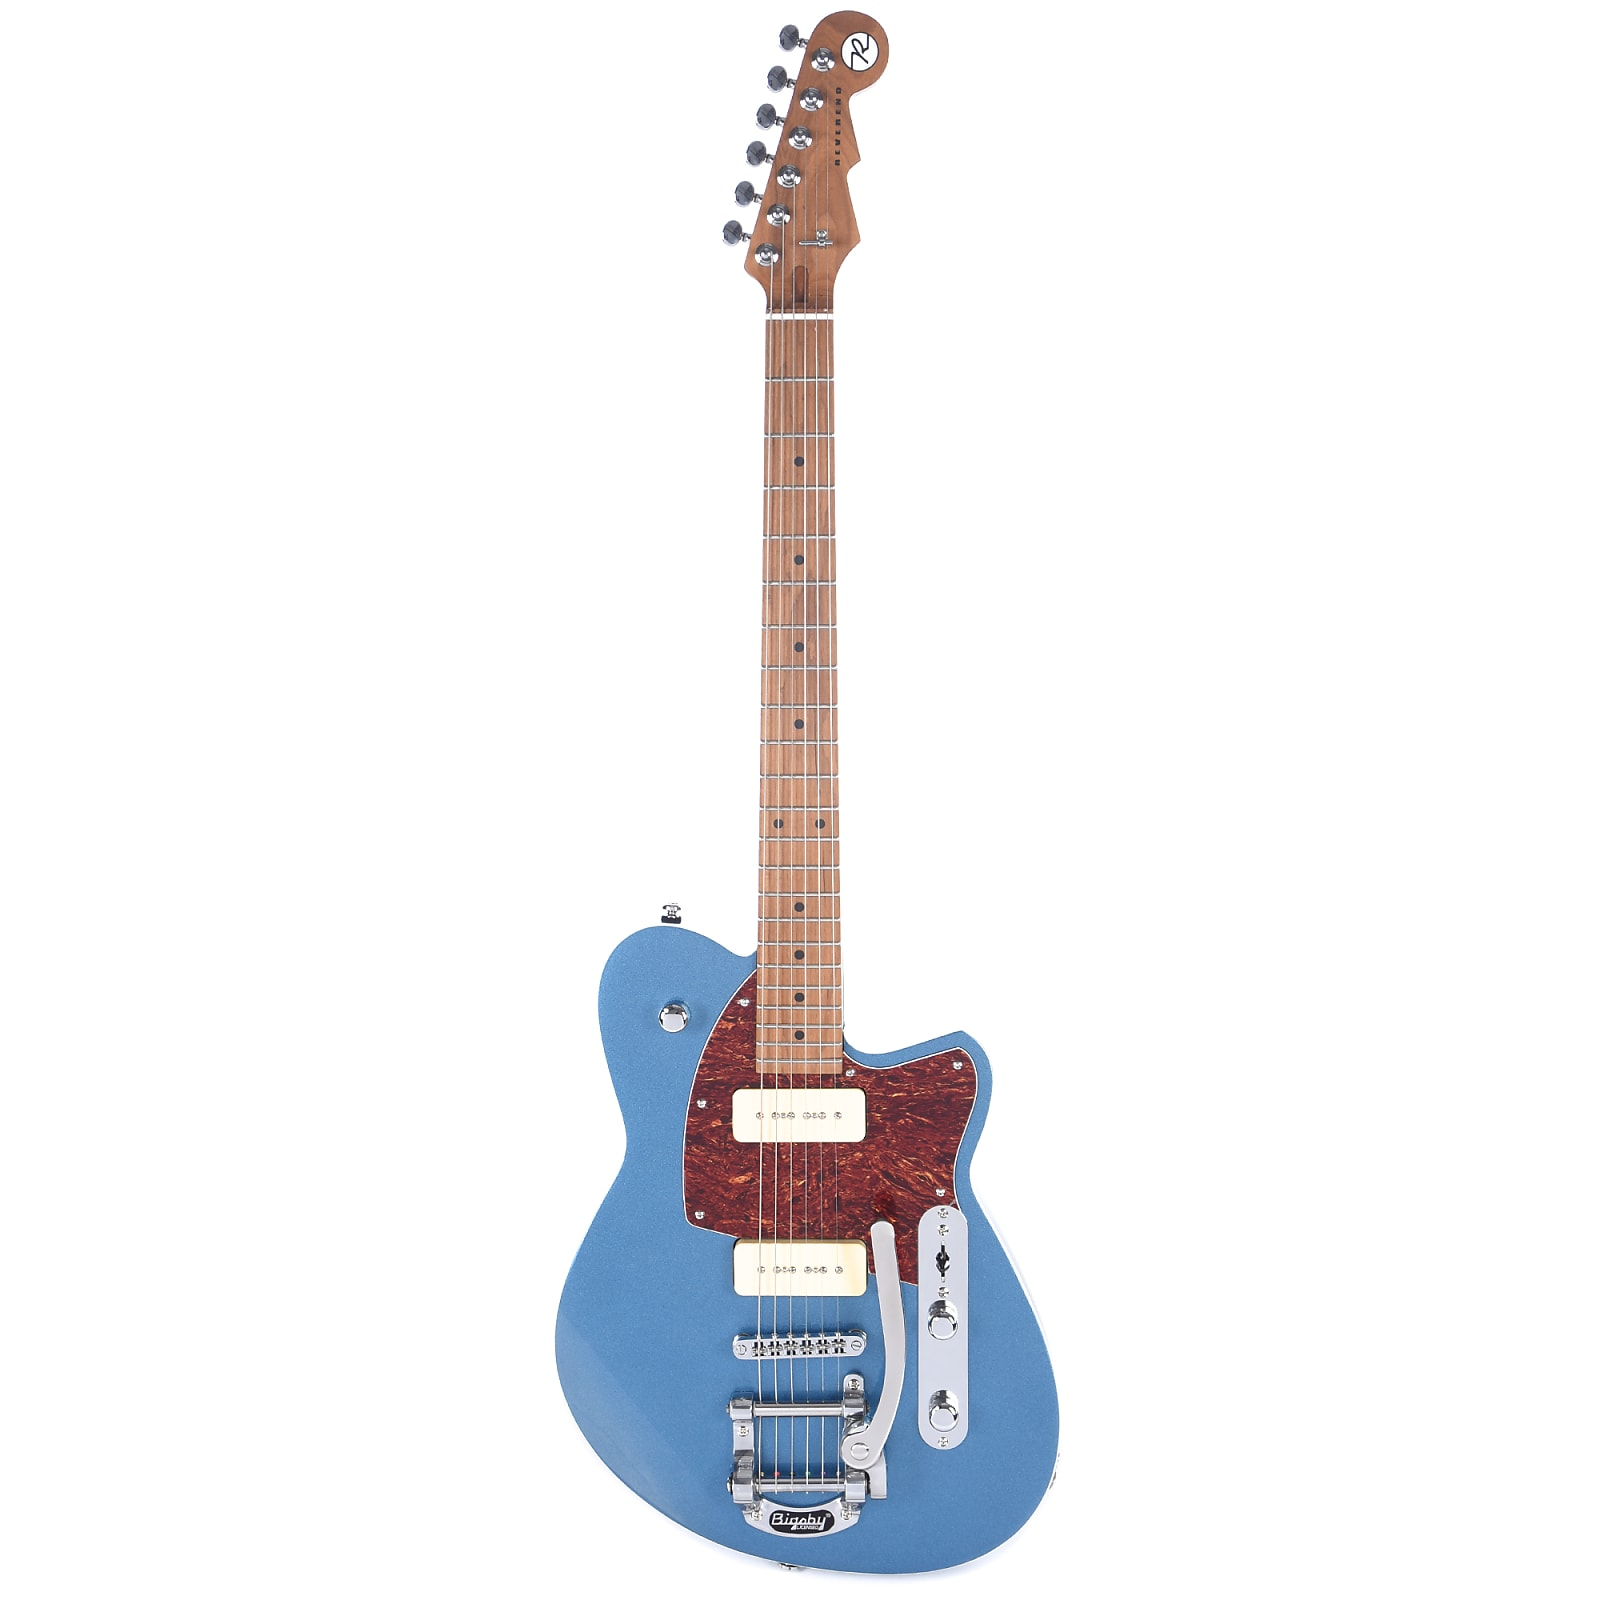 Reverend Charger 290 Great Lakes Blue LE w/Bigsby & Roasted Maple Neck (CME Exclusive)